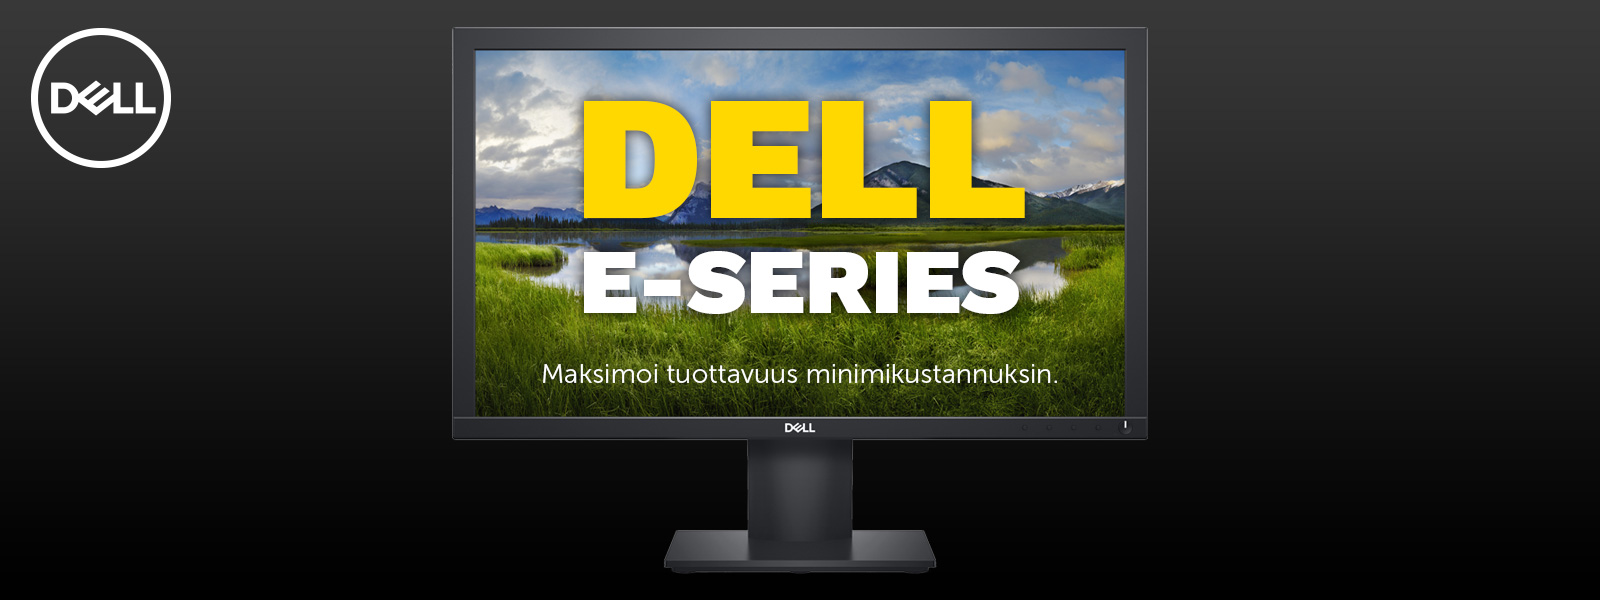 dell_e-series_header